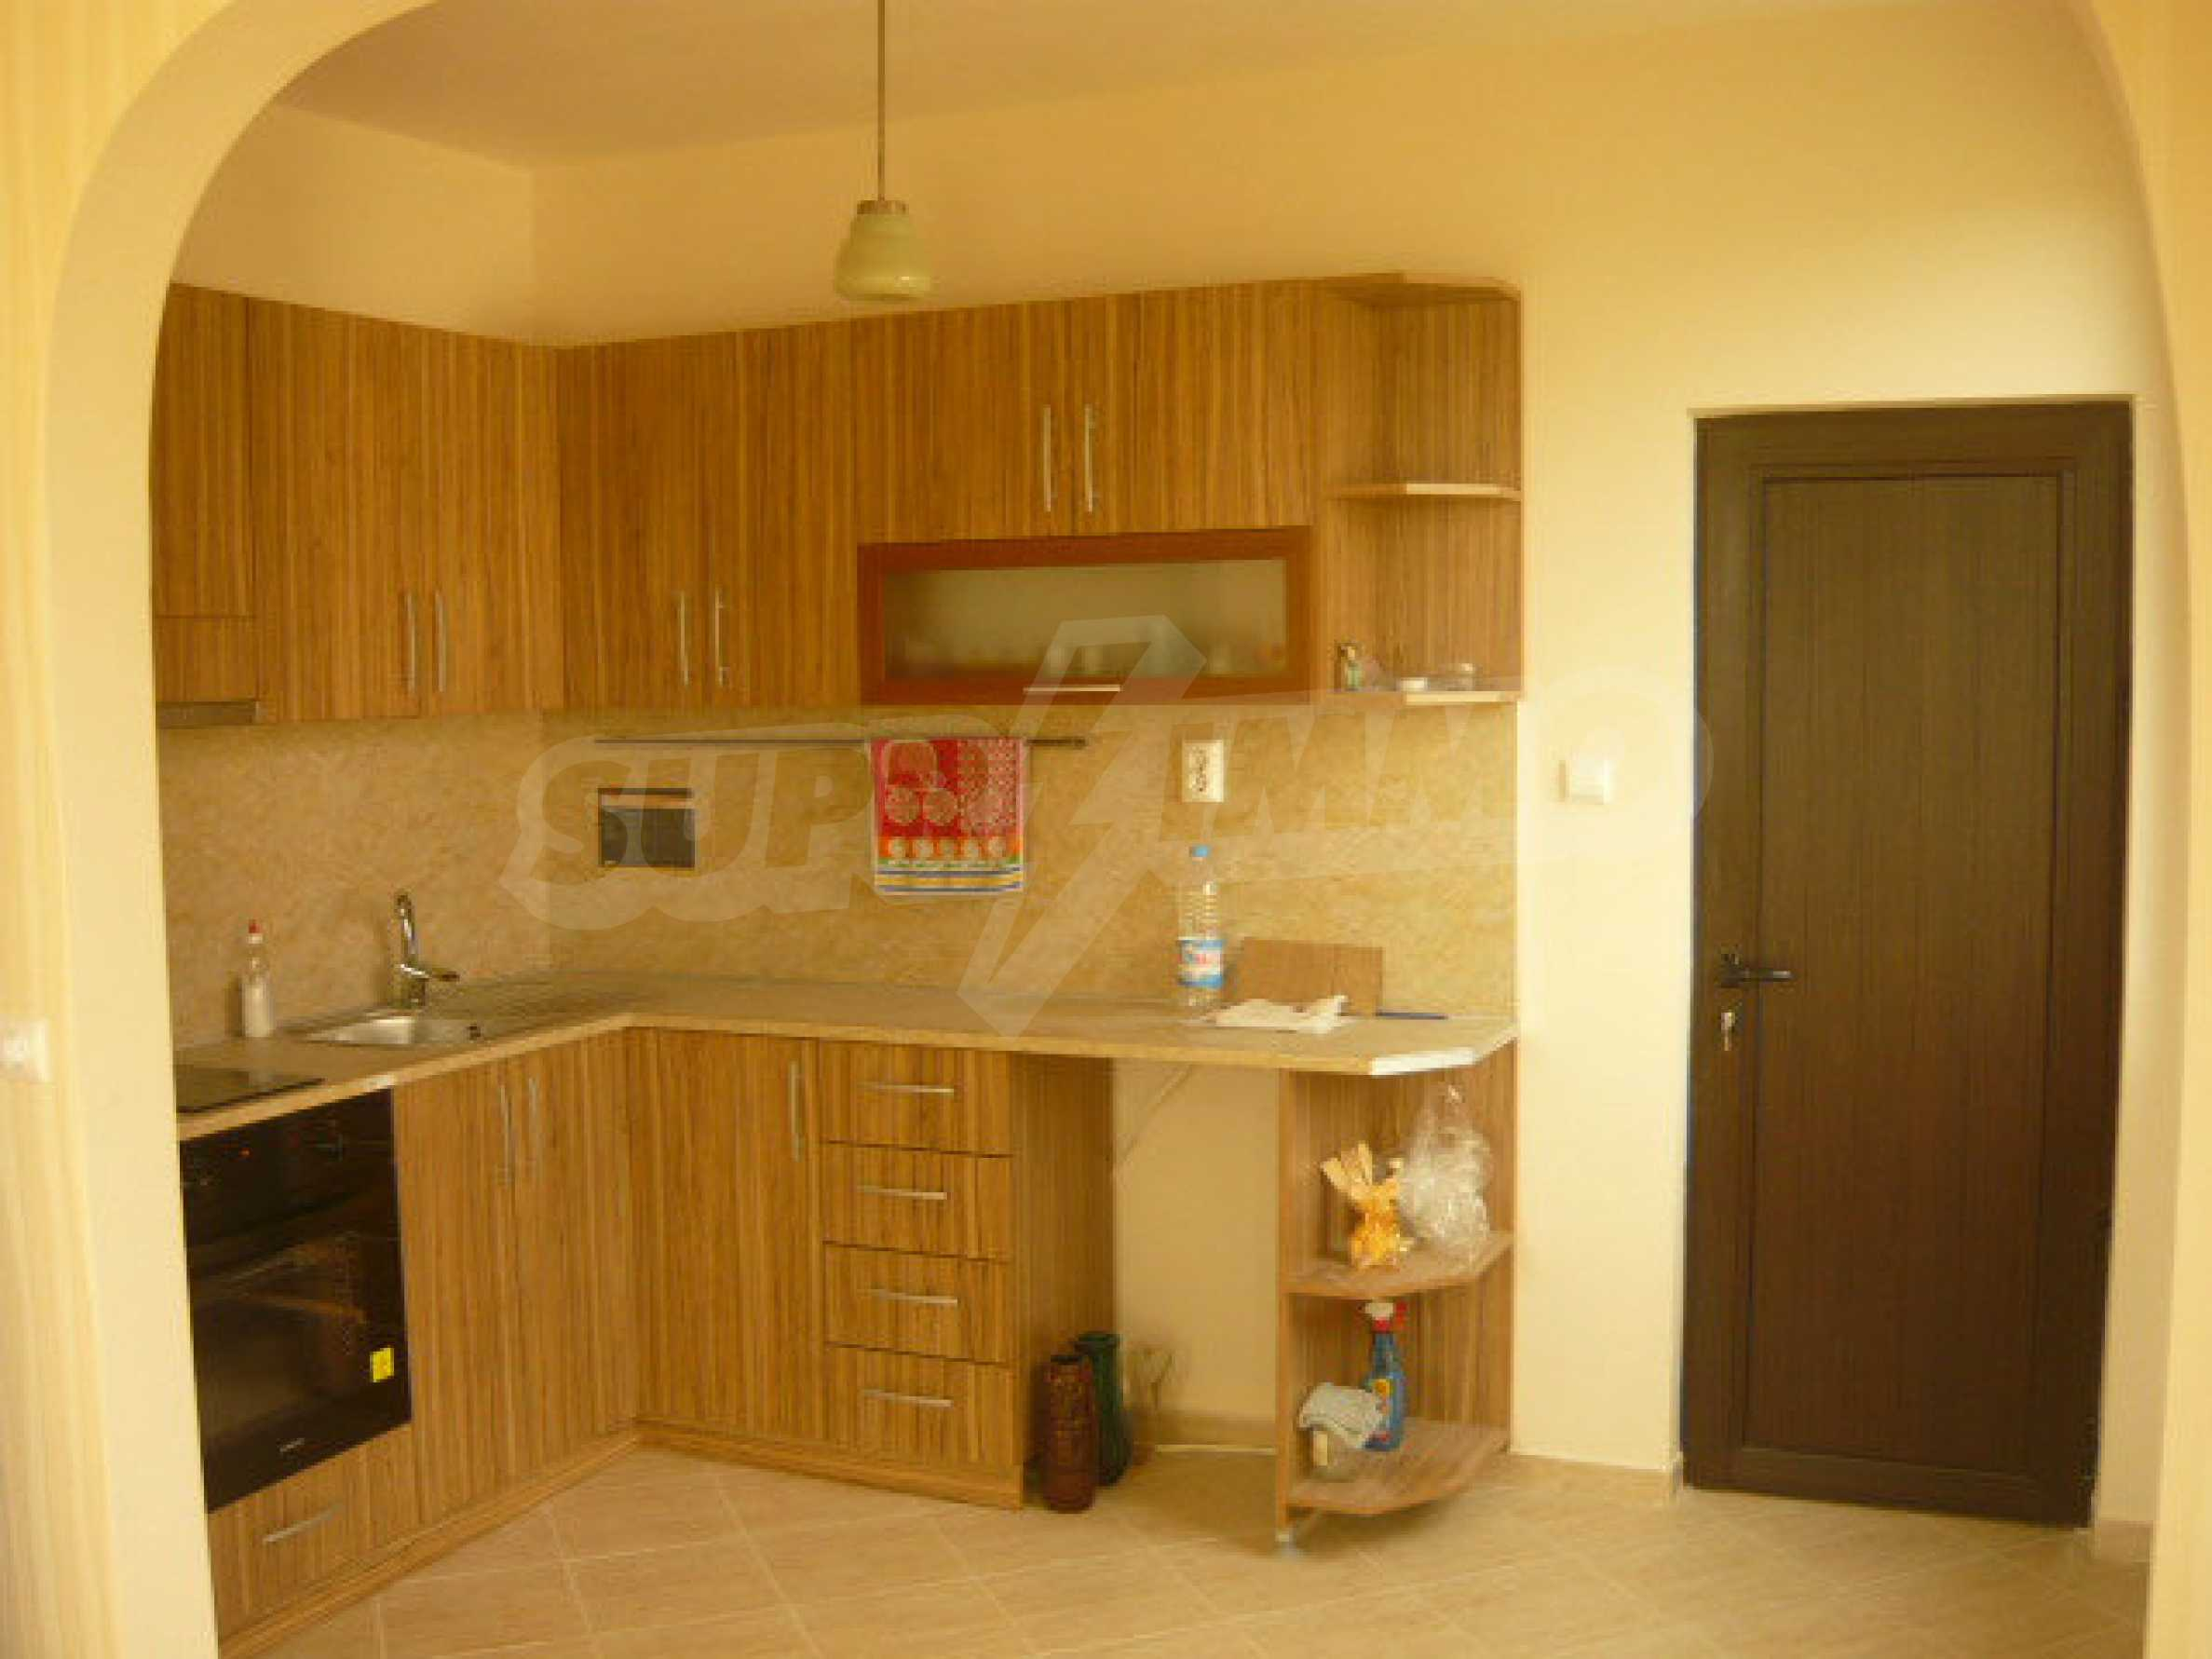 Two-storey house in a village located 3 km. from Veliko Tarnovo 5